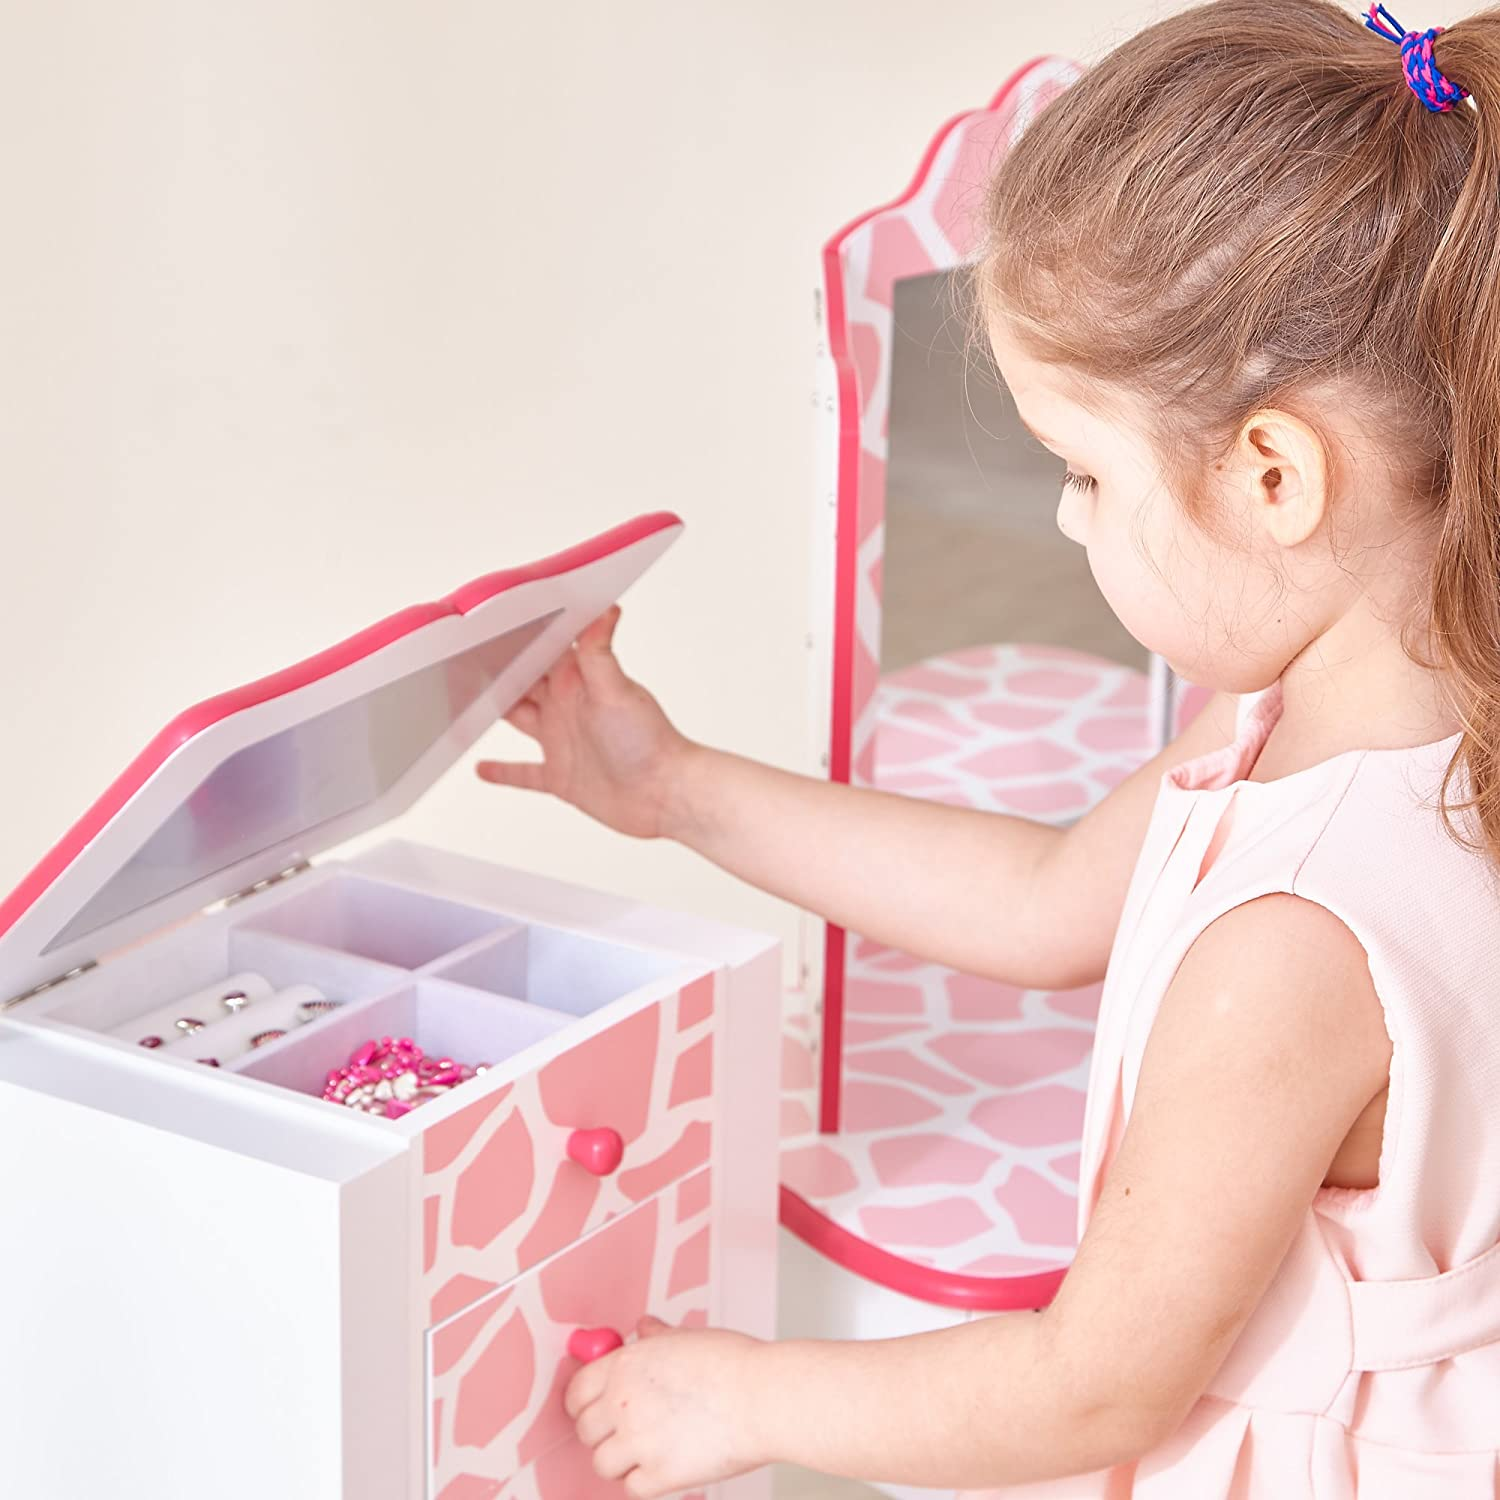 Amazoncom Teamson Kids Fashion Prints Jewelry Armoire with